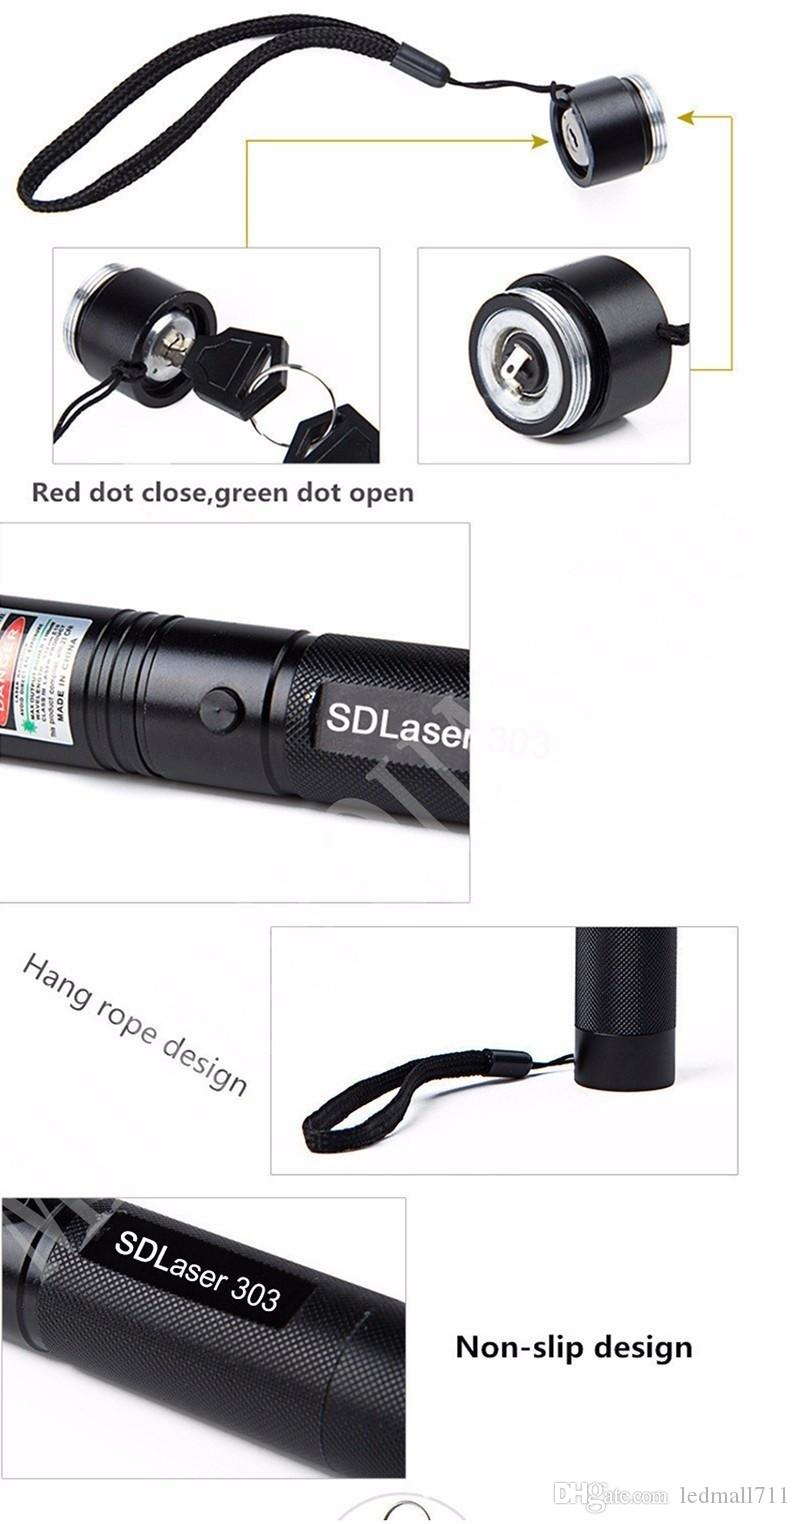 Laser 303 Long Distance Green SD 303 Laser Pointer Powerful Hunting Laser Pen Bore Sighter +18650 Battery+Charger